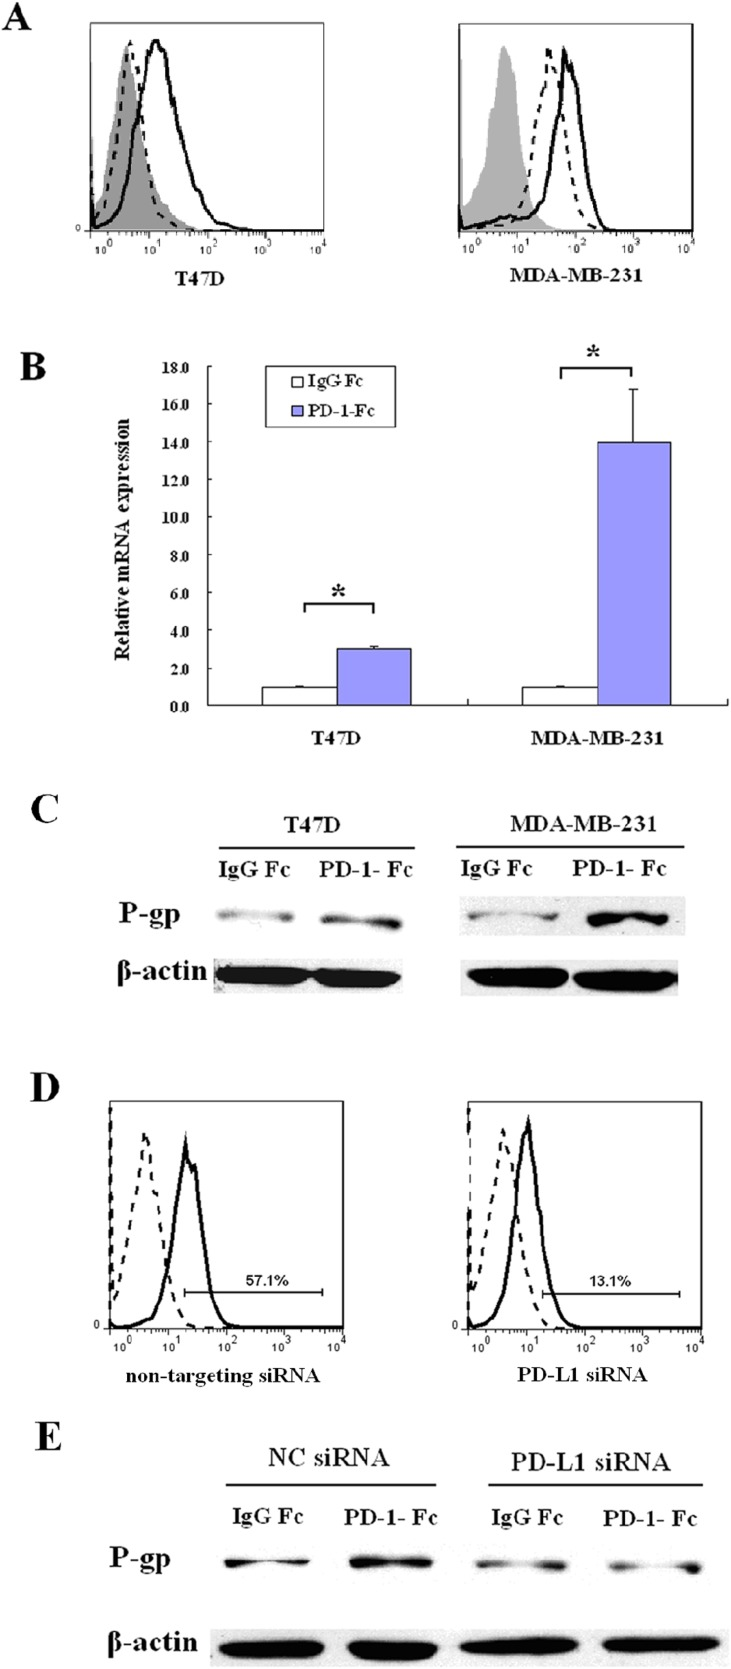 PD-1/PD-L1 interaction up-regulates MDR1/P-gp expression in breast cancer cell lines (A ) T47D and MDA-MB-231 cells were treated with 75ng/ml IFN-γ for 24 hours and the cell surface expression of PD-L1 was determined by flow cytometry. The shaded histograms indicate staining with PE-labeled isotype control IgG, the dashed histograms indicate staining with PE-labeled anti-PD-L1 antibody, and the open histograms indicate IFN-γ treated cells staining with PE-labeled anti-PD-L1 antibody. ( B ) MDR1 mRNA was analyzed by real-time quantitative PCR in MDA-MB-231 cells or IFN-γ-treated T47D cells after treatment with IgG Fc or PD-1-Fc for 24 h. Amplification of β-actin mRNA was used as a control.( * p